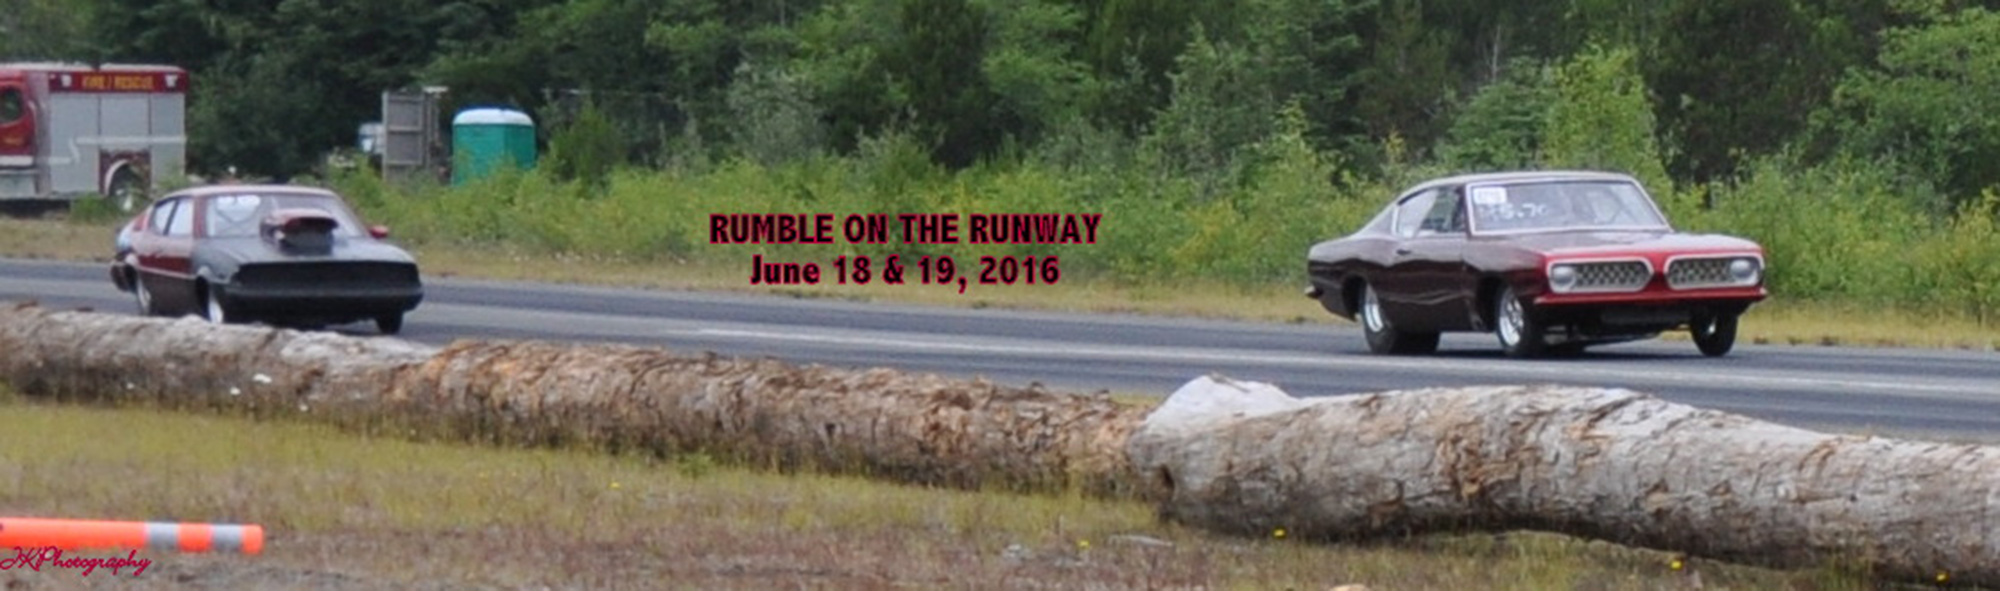 Rumble on the Runway June 18 & 19, 2016 458